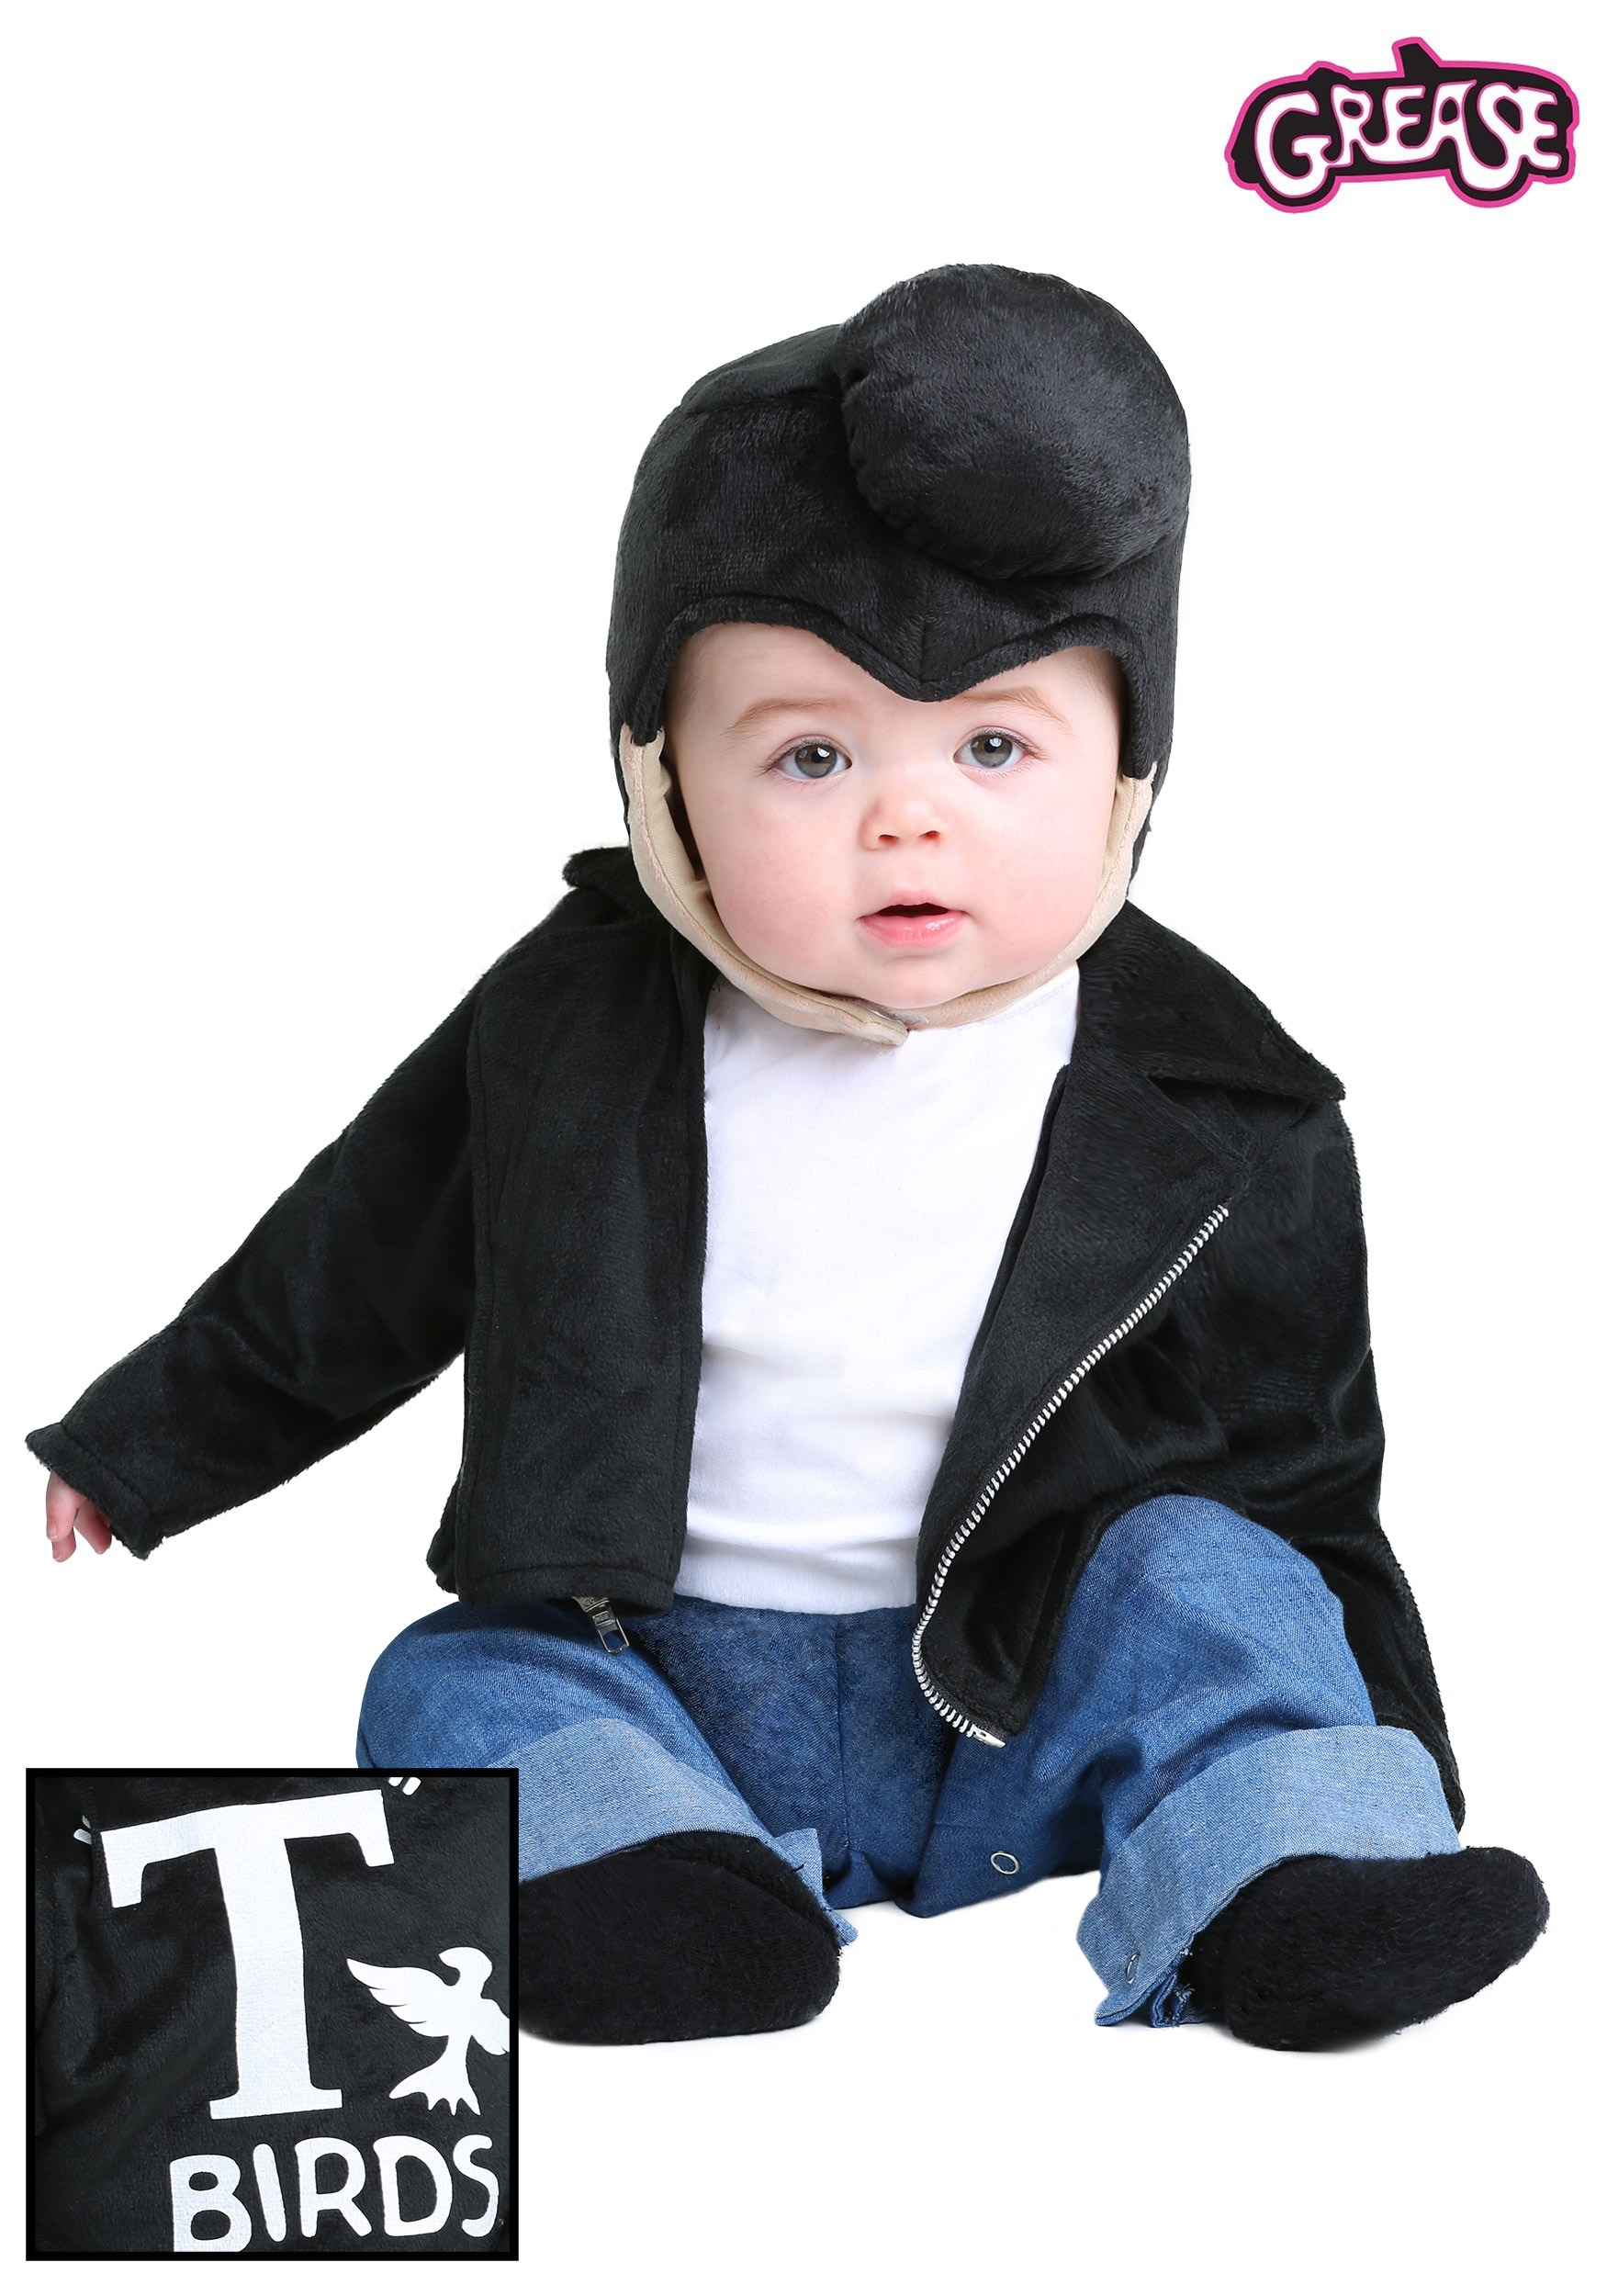 grease t birds infant costume - Greece Halloween Costumes